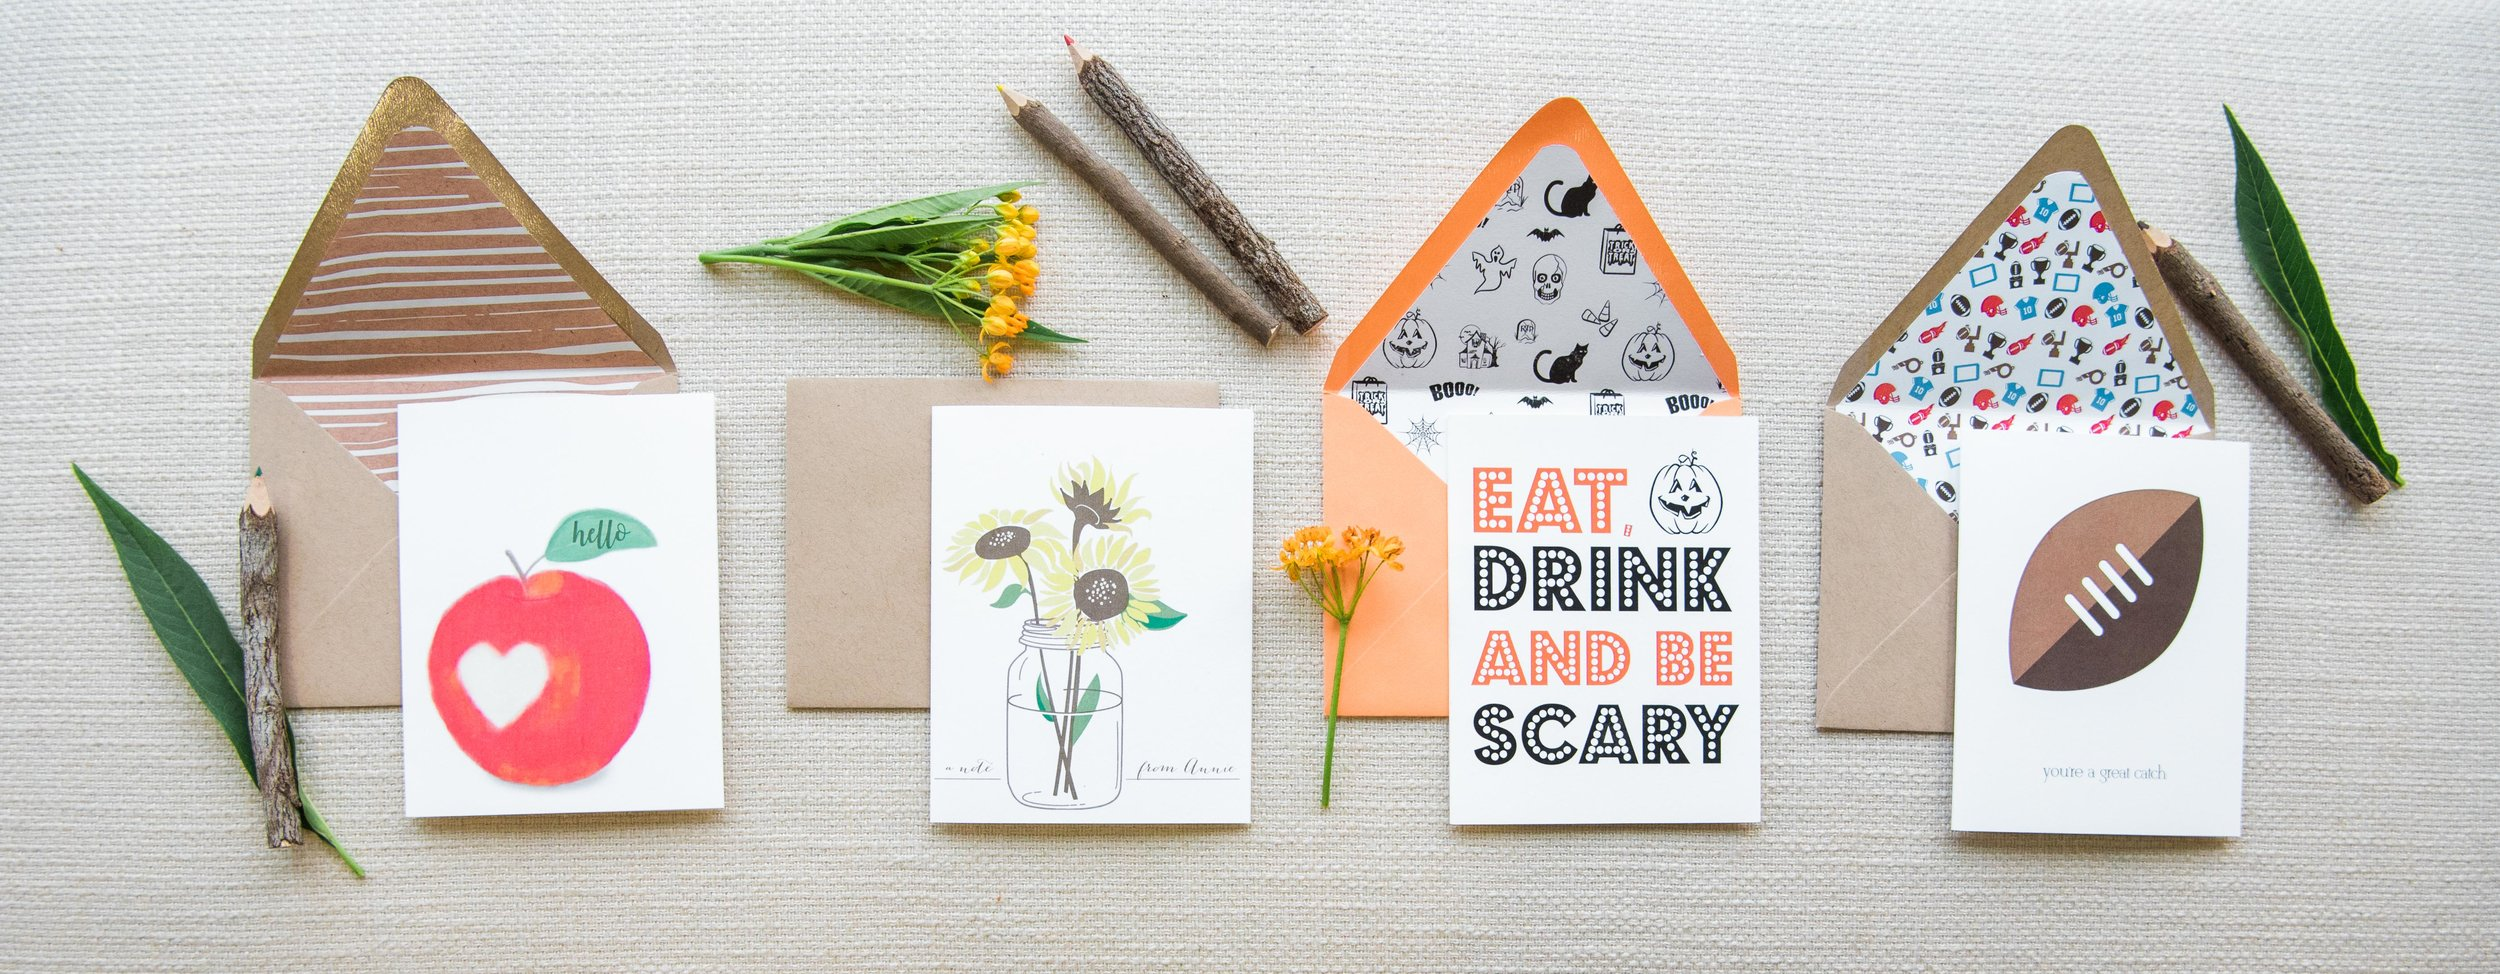 October's stationery subscription